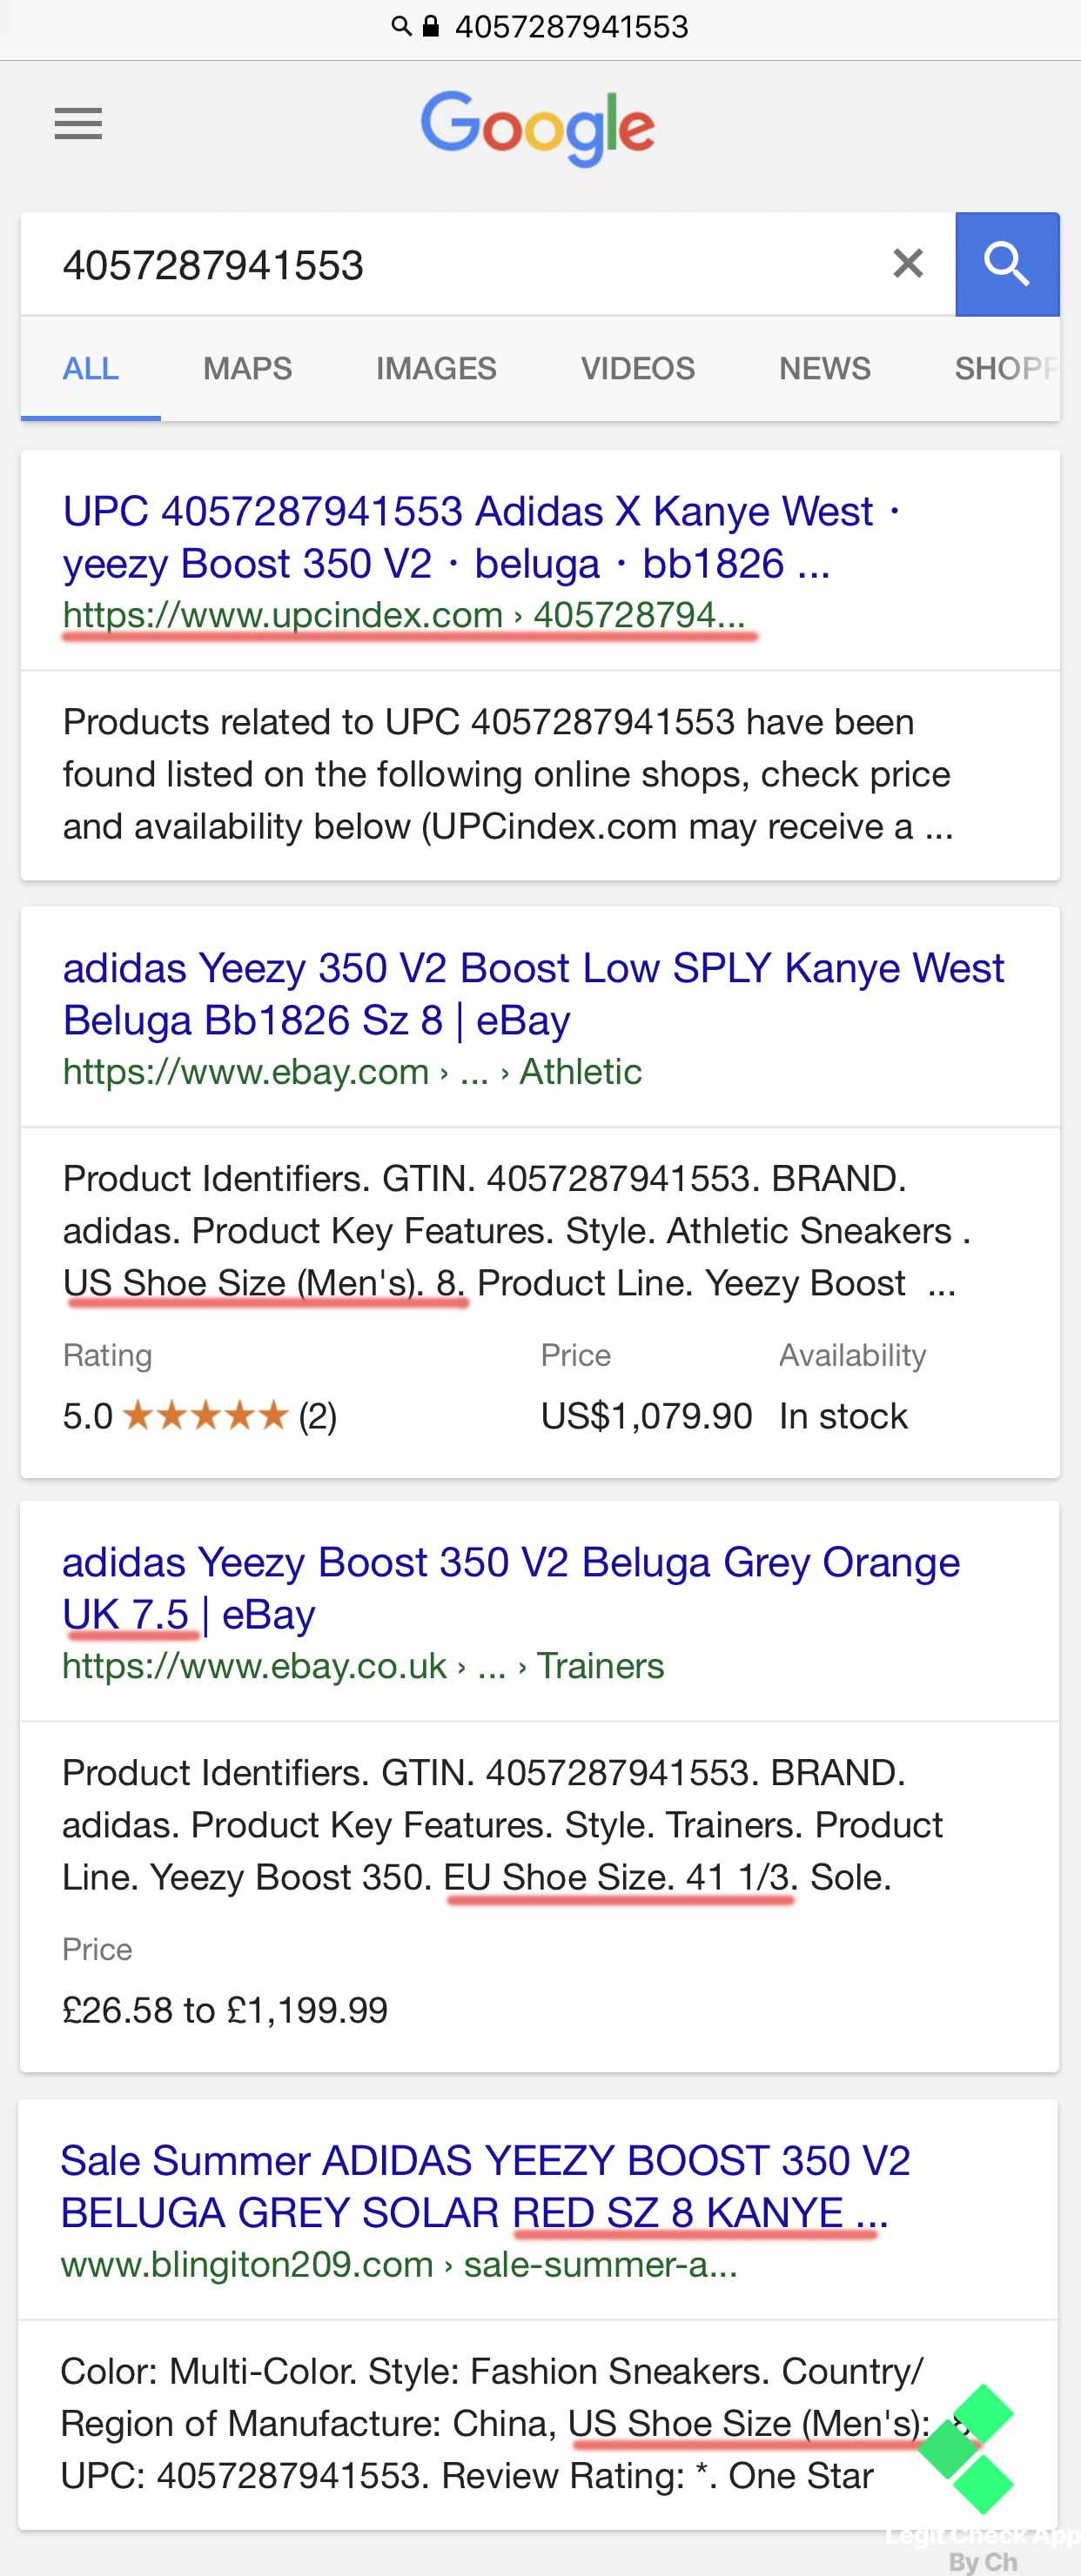 How To Tell Fake Vs Real Adidas/Nike Sneakers - The Barcode Scanner